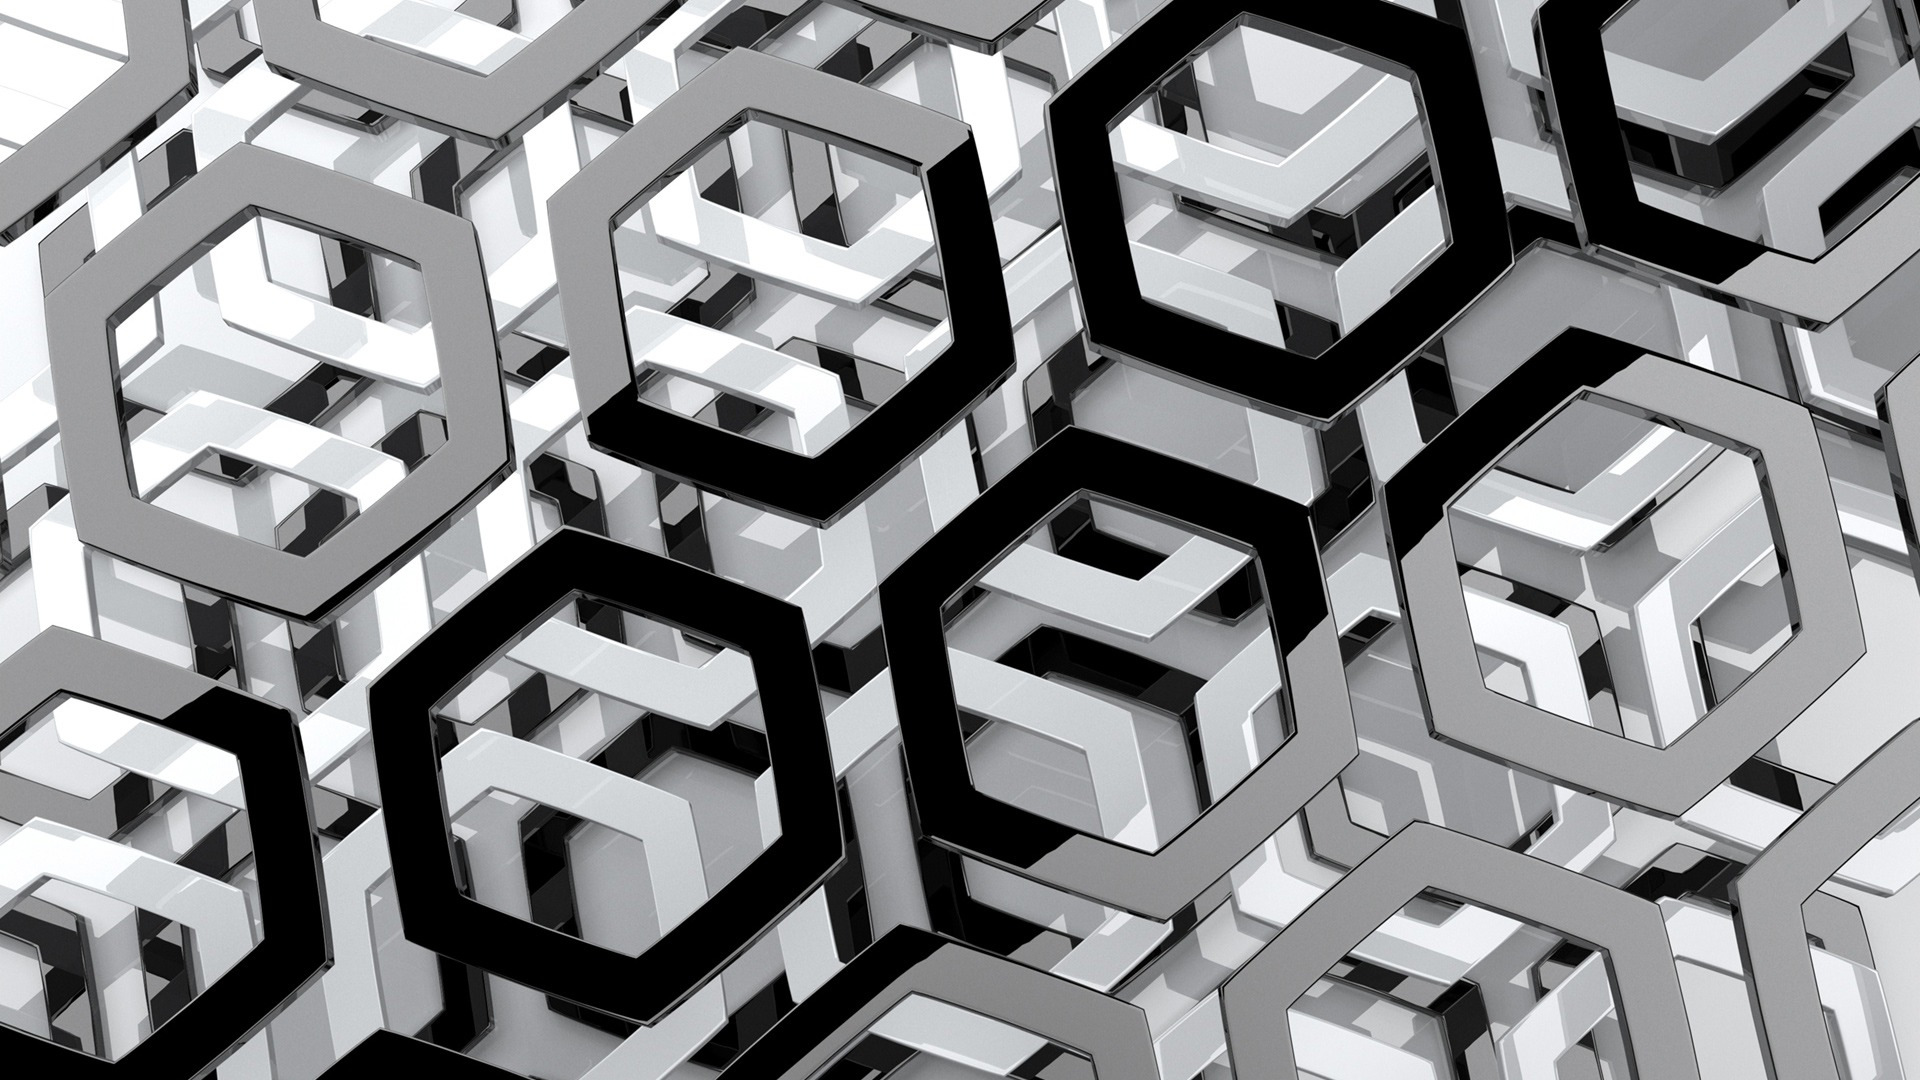 CGI - Artistic  CGI Hexagon Wallpaper